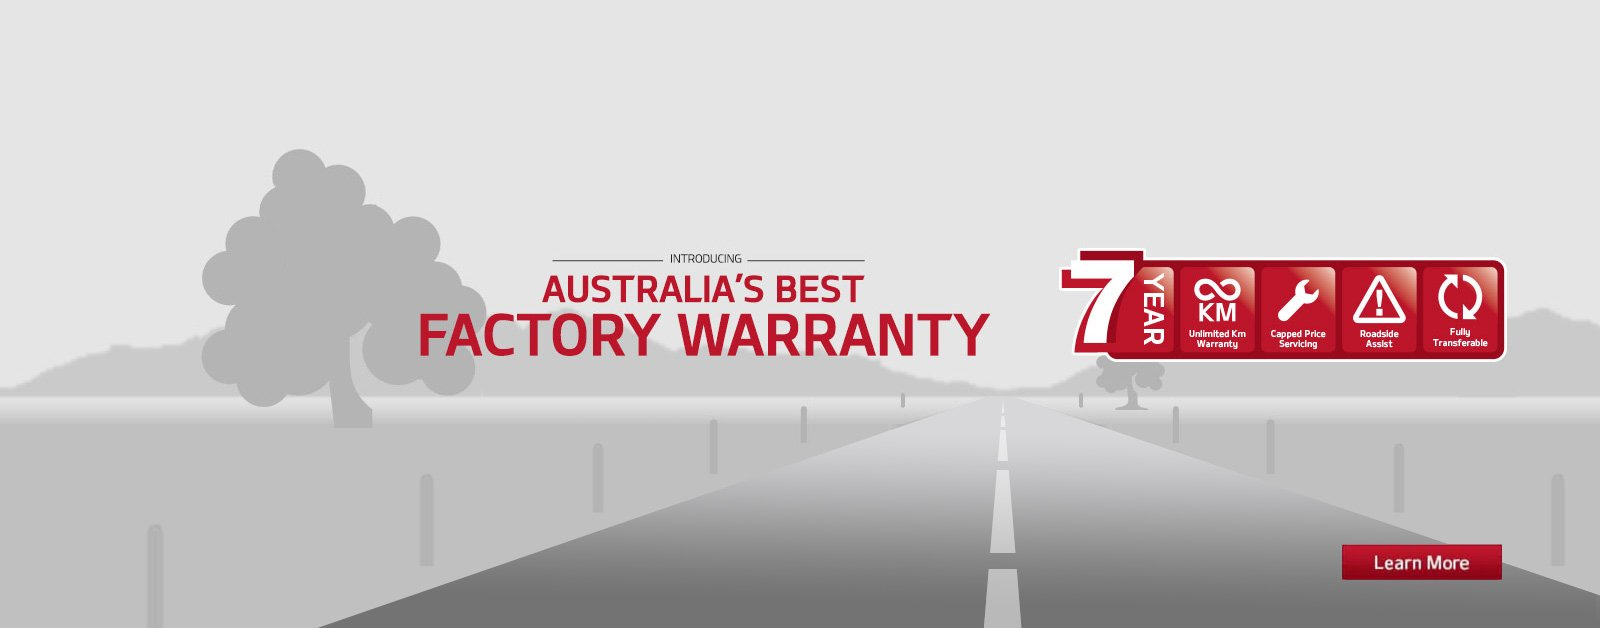 Australia's Best Factory Warranty. 7 year unlimited km warranty, capped price servicing and roadside assist.